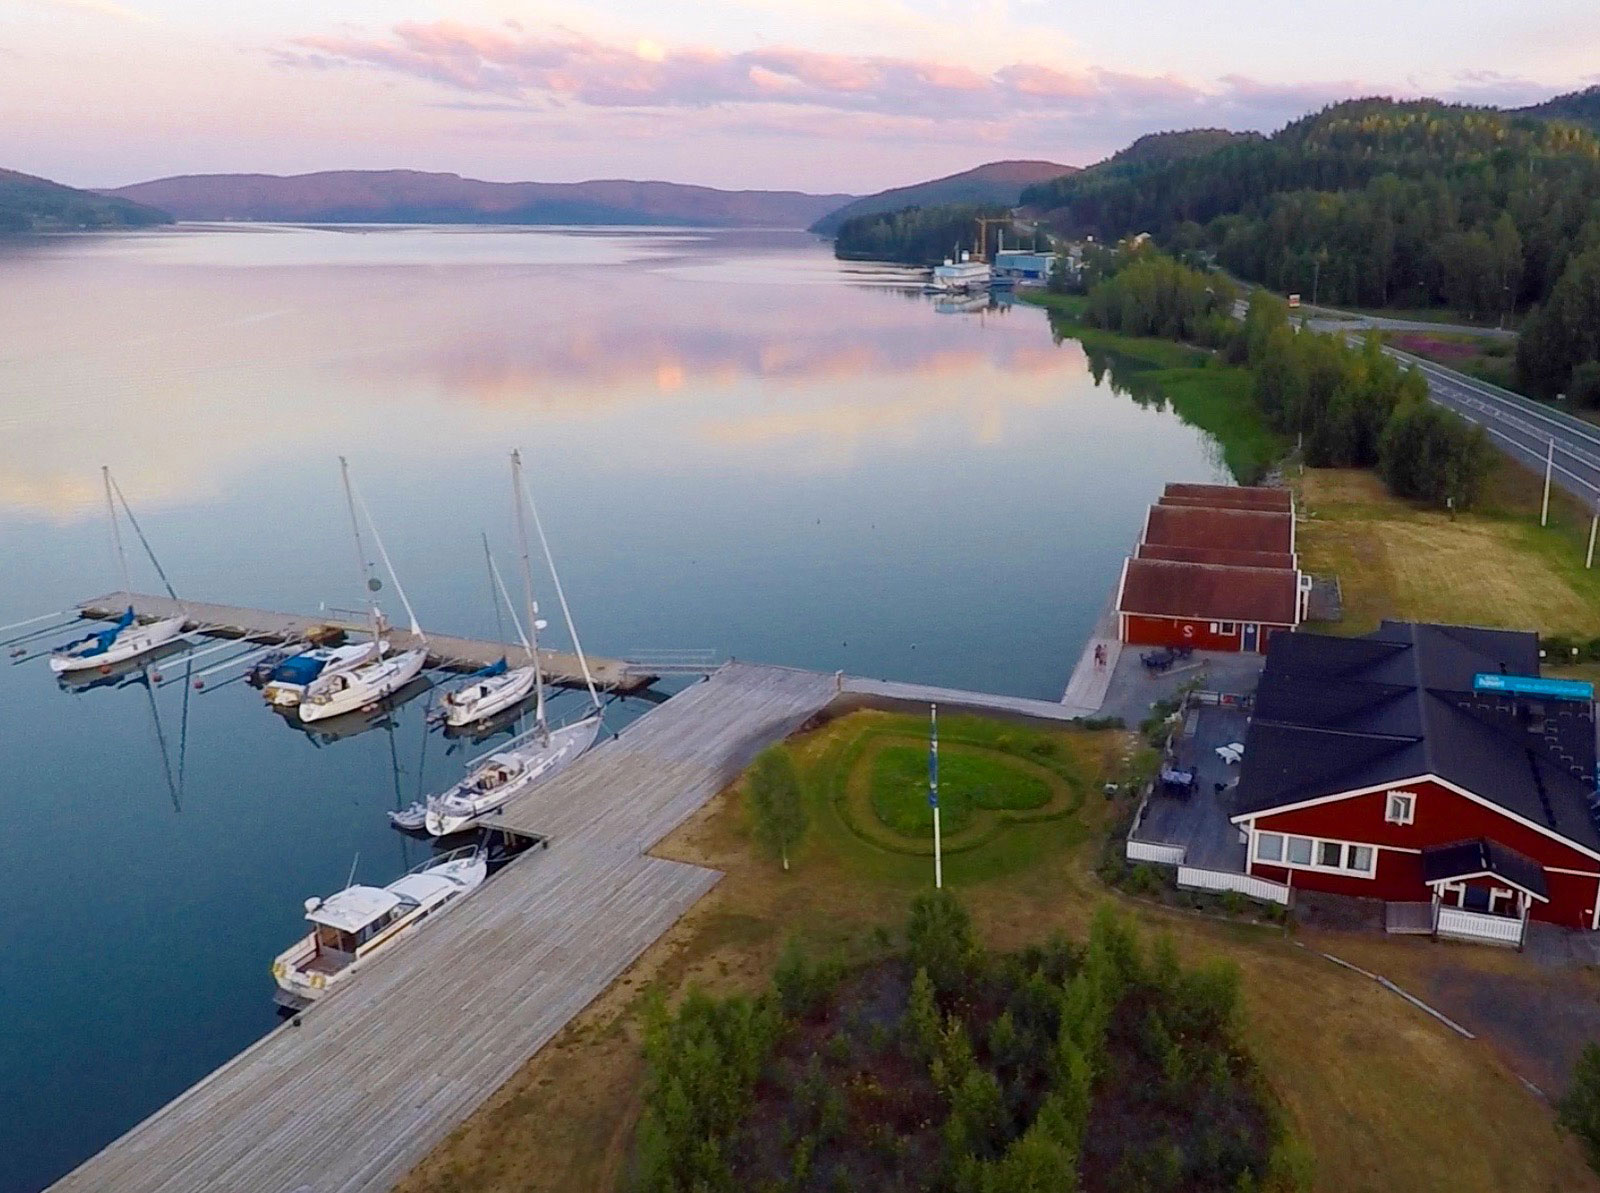 Overview of Docksta Havet guest harbour. Photo © Courtesy of Mia Wålsten S/Y Atla3